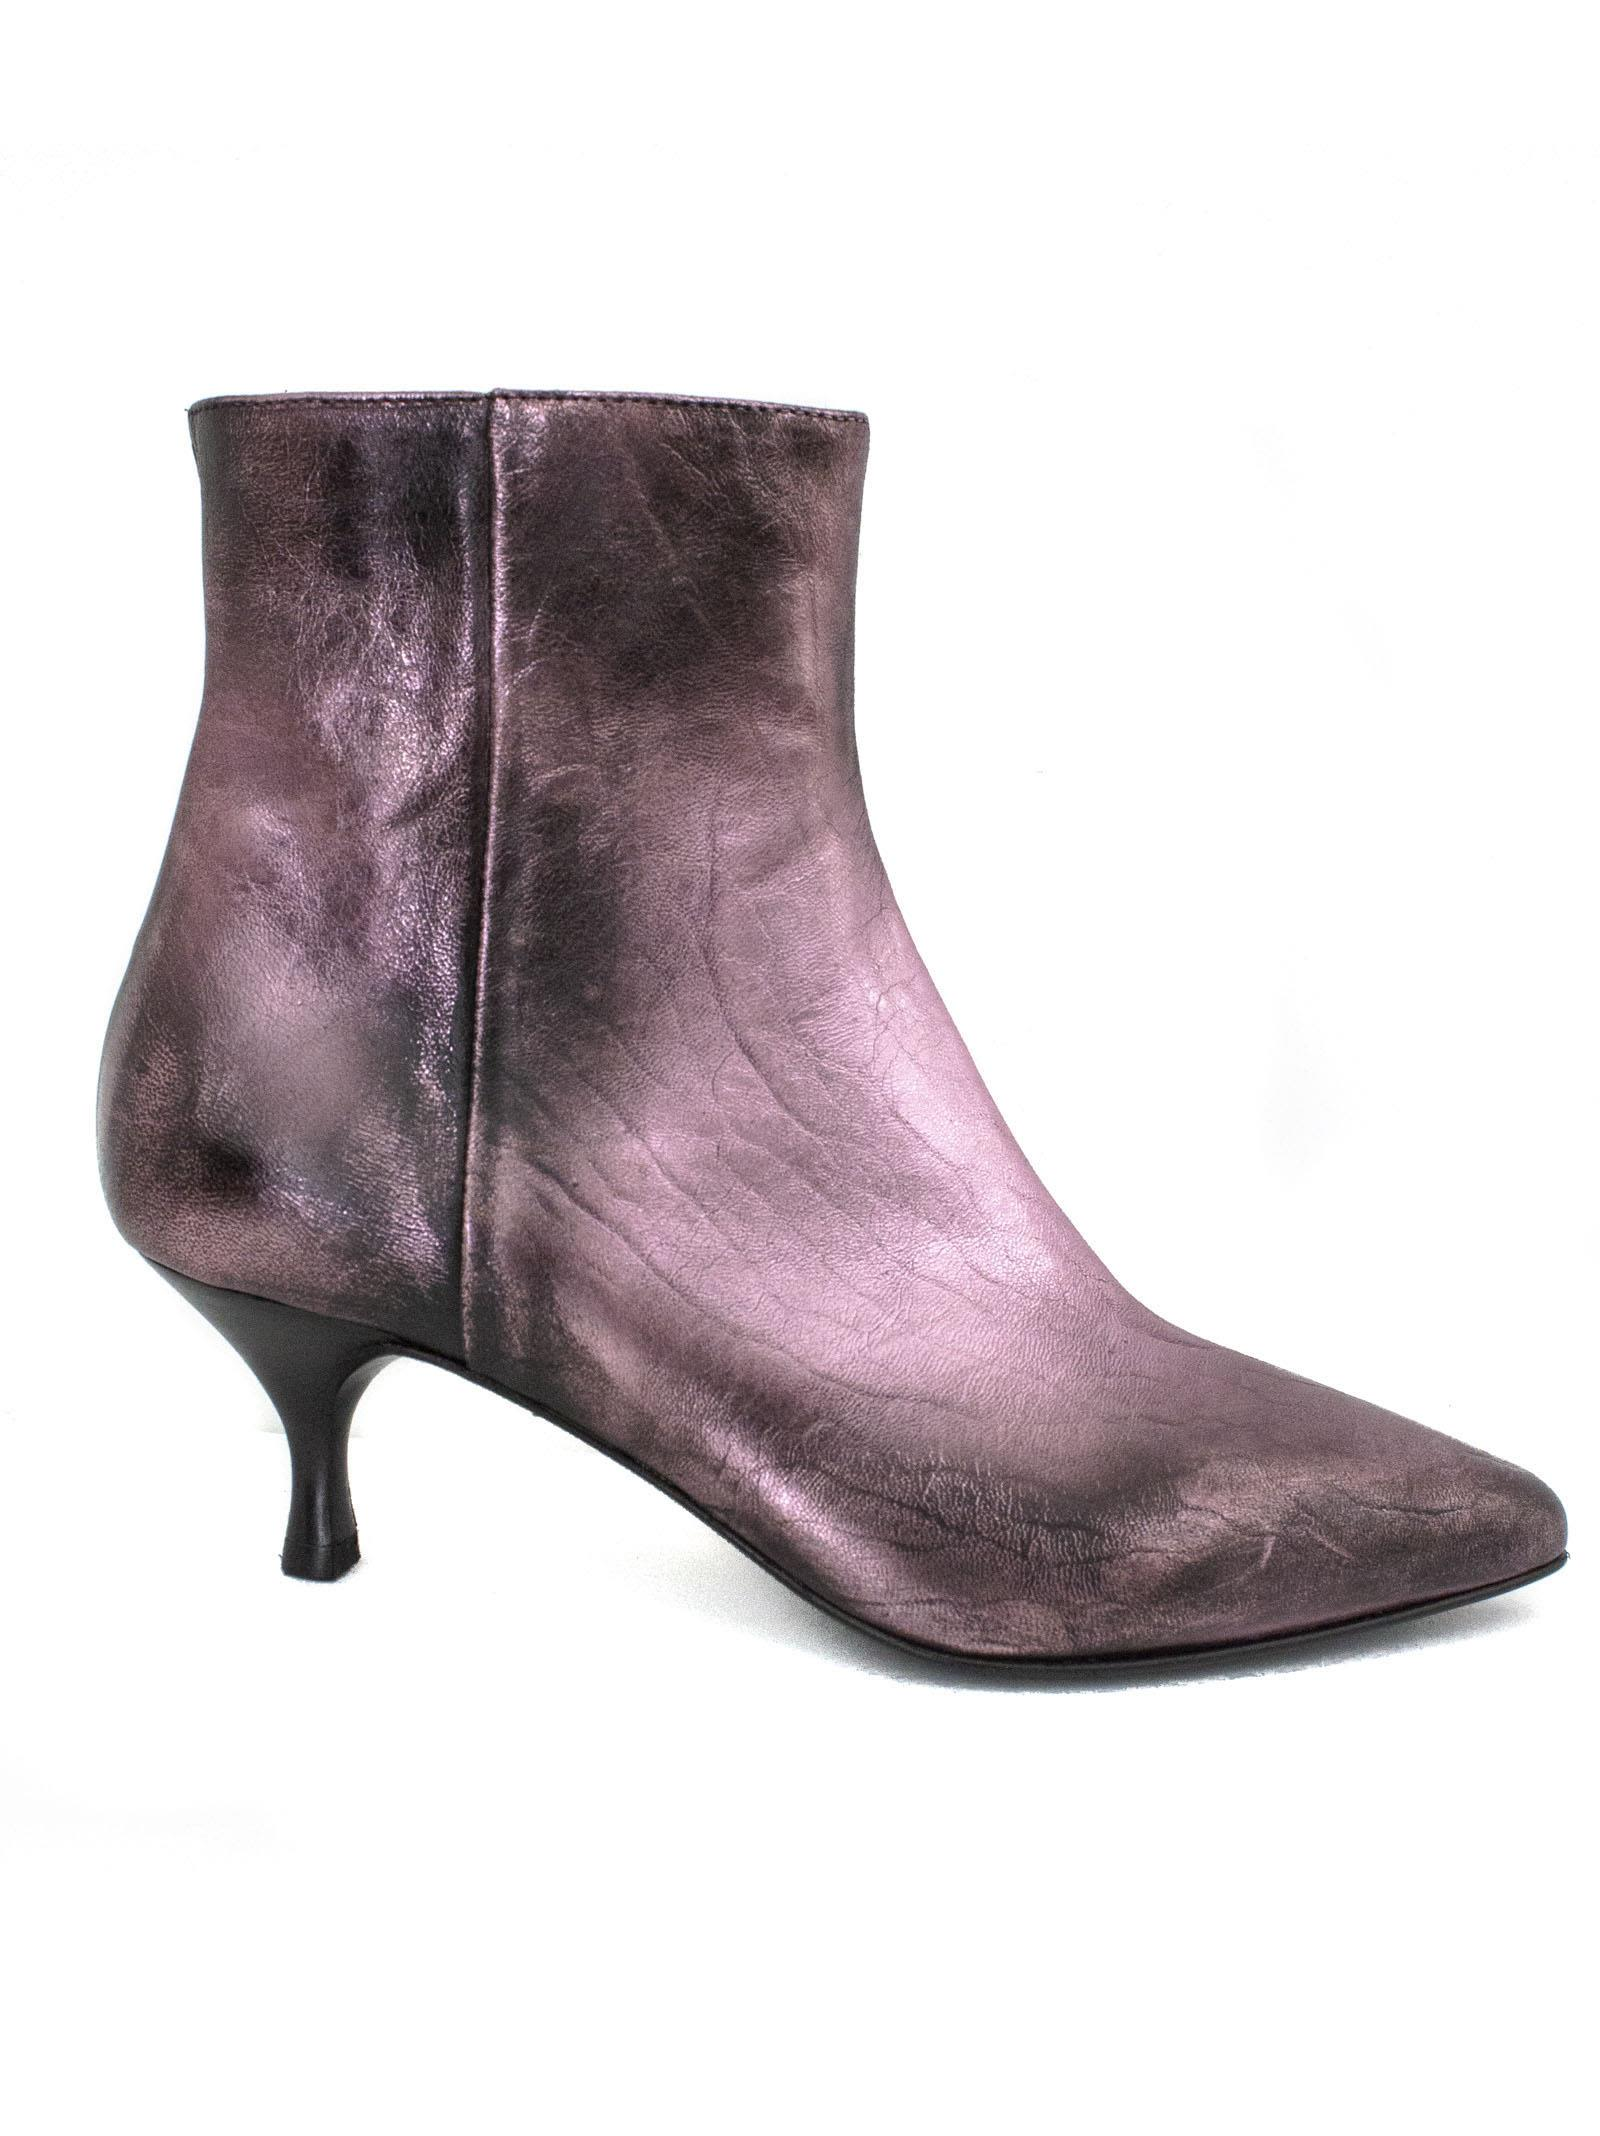 Strategia Spritz Ankle Boot In Pink Metallic Leather.